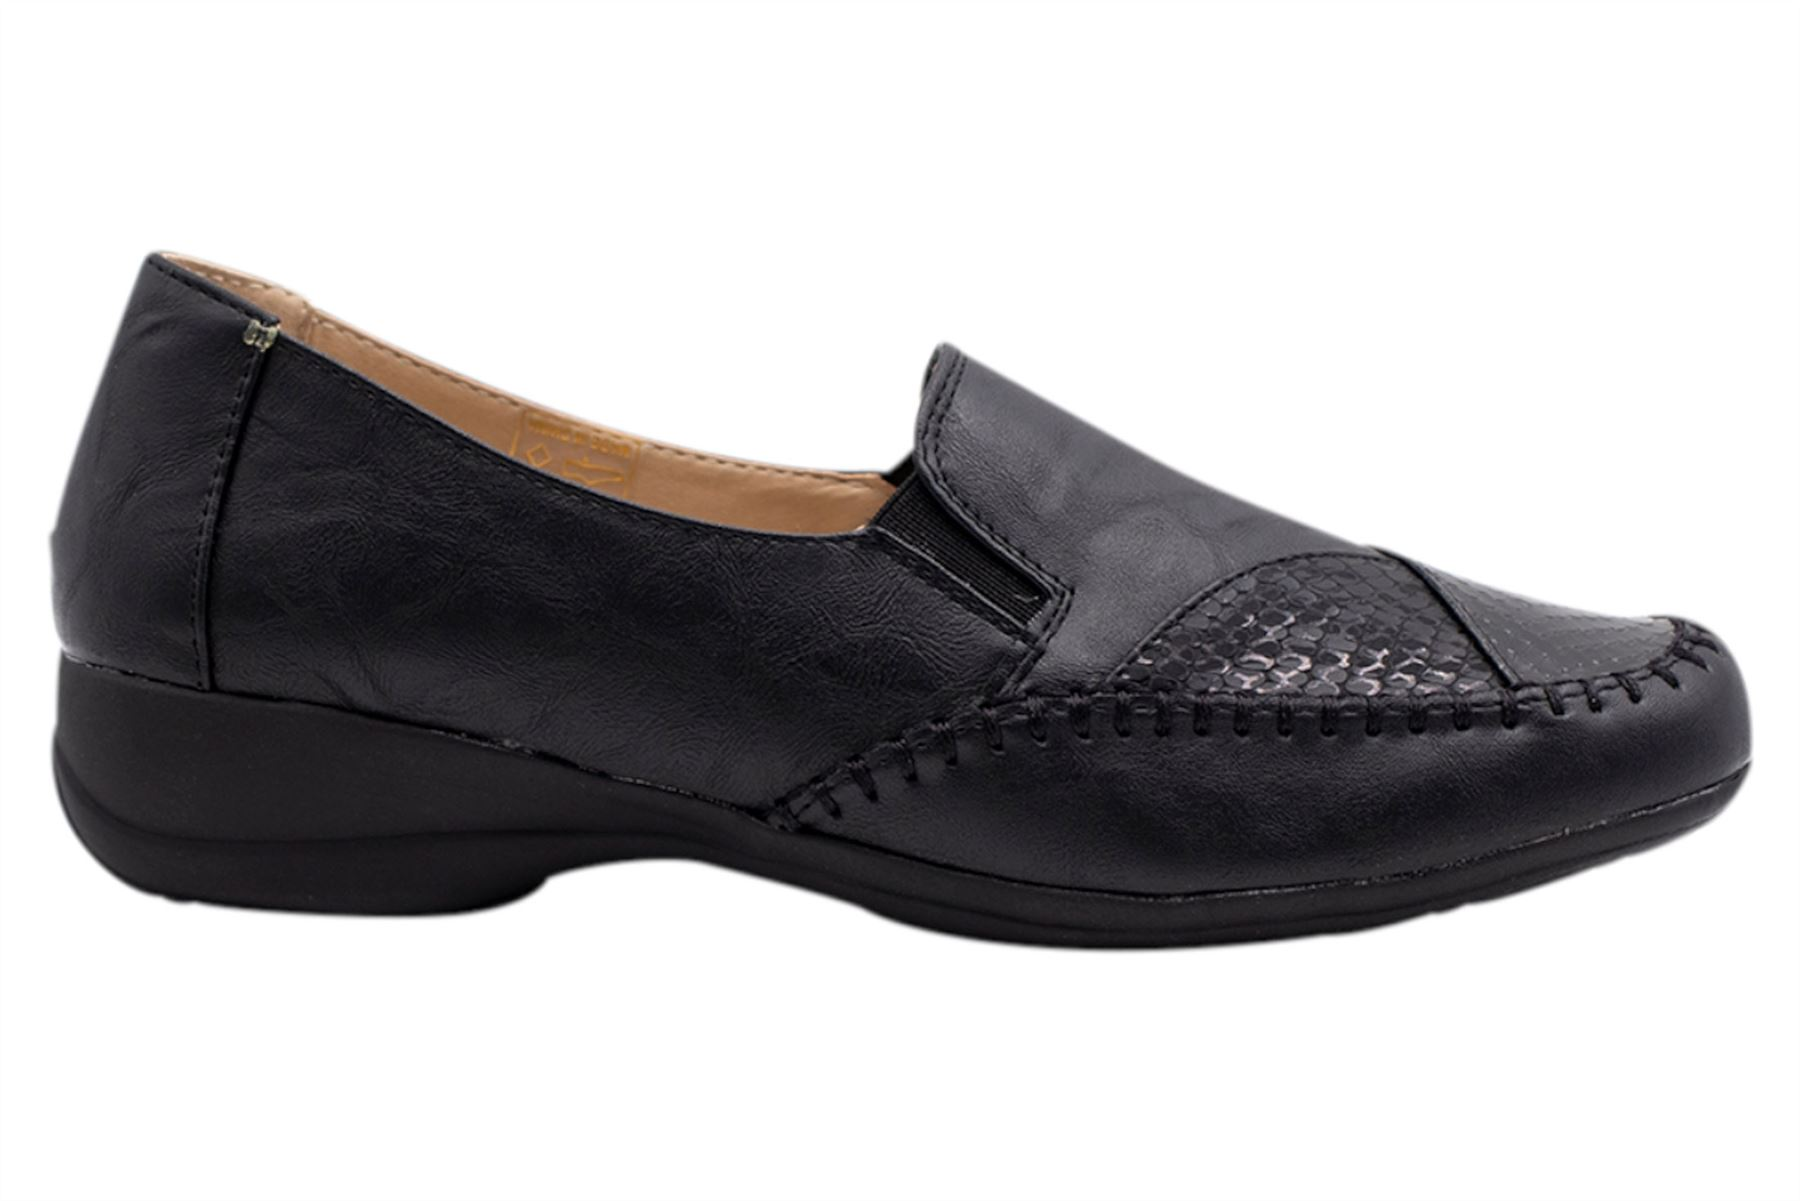 Womens-Flat-Shoes-Ladies-Pumps-Office-Work-Casual-Slip-On-Loafer-Size thumbnail 17